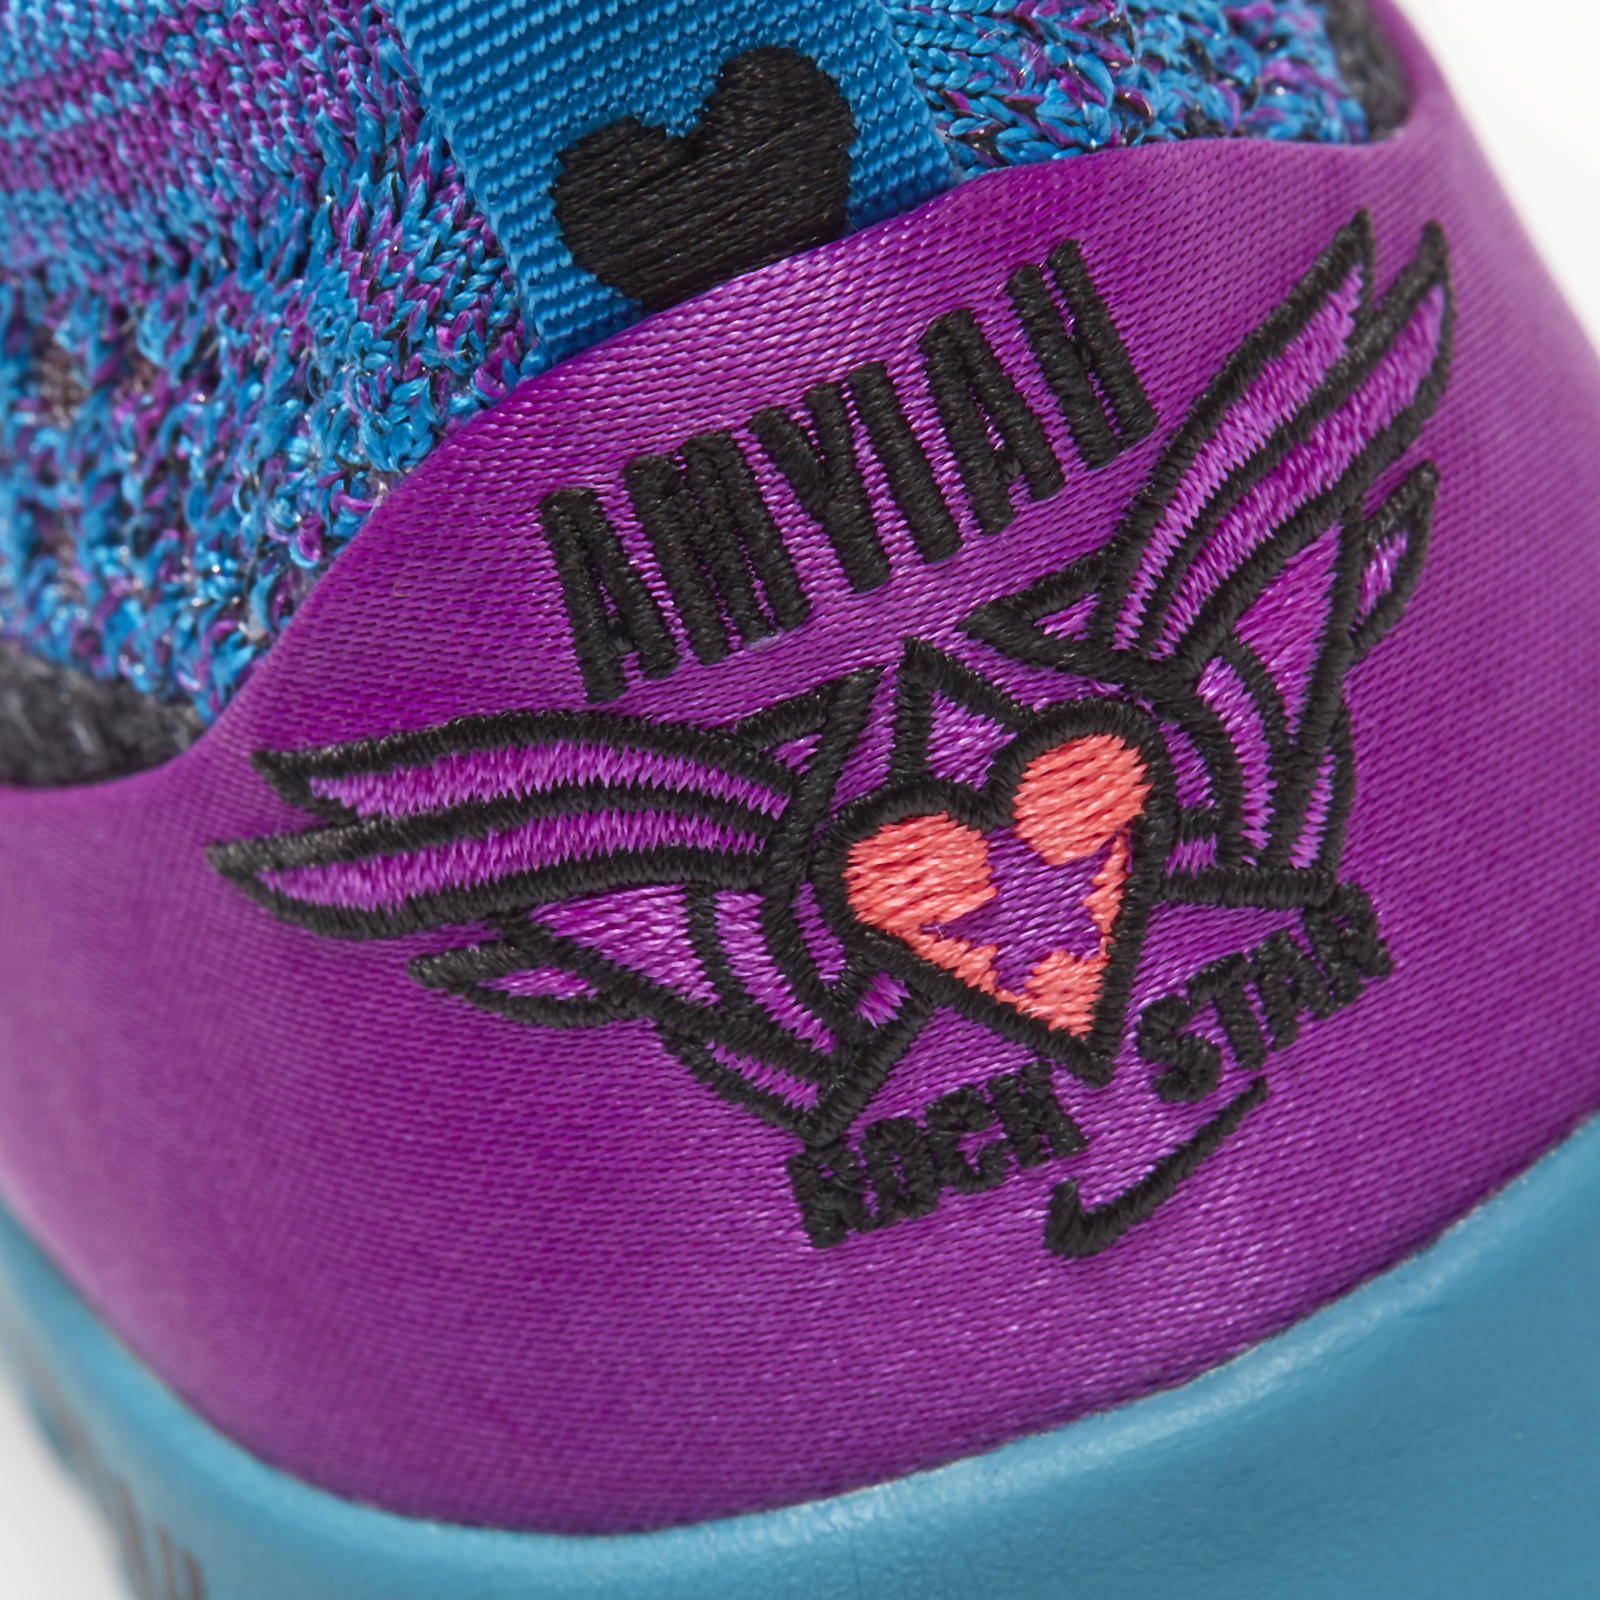 cfce53a9a34a What the Doernbecher Freestyle Program Means to the Sneaker Community 15